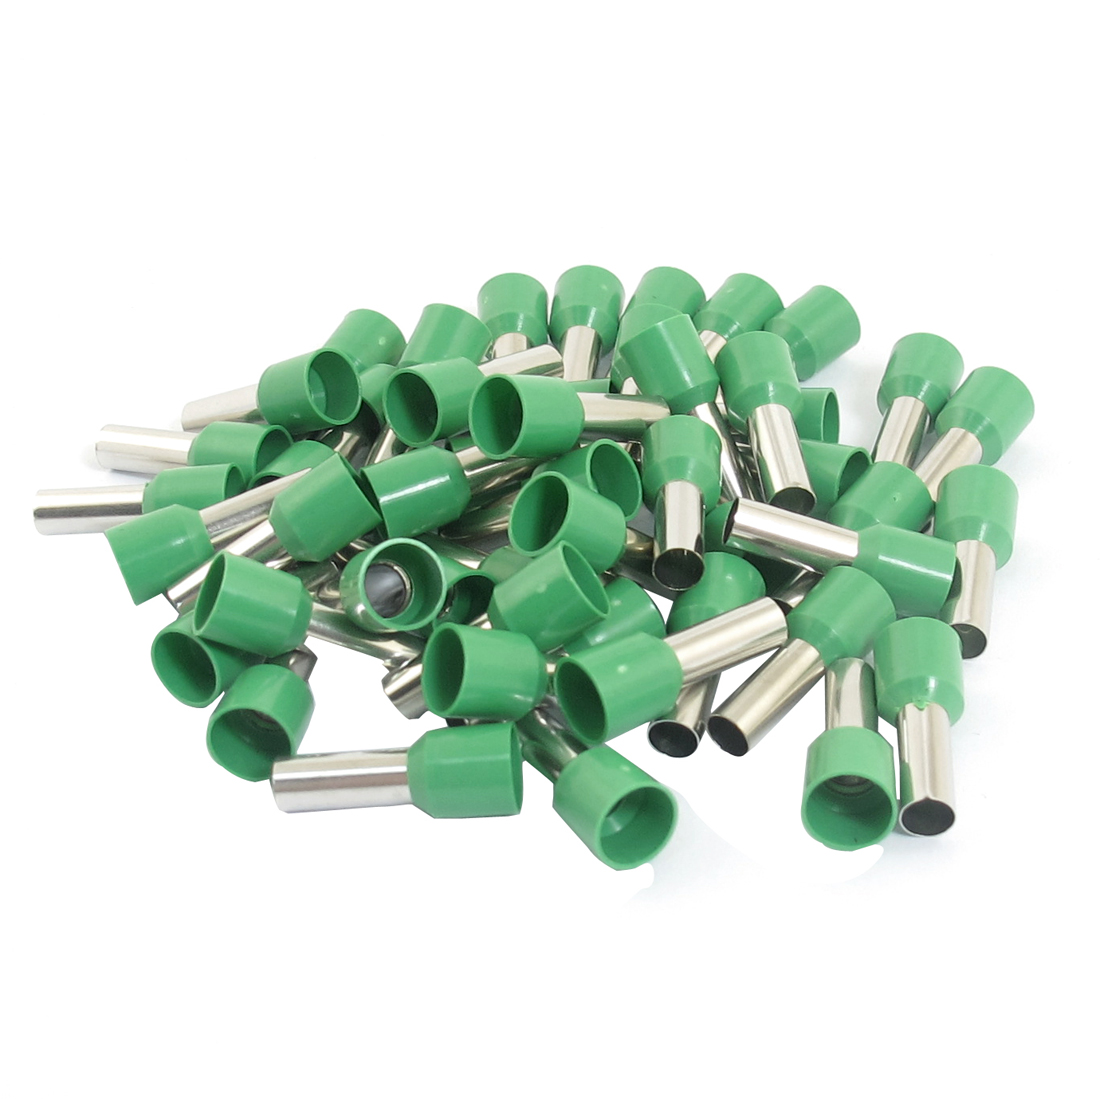 50pcs E1012 8AWG Green Plastic Tube Tublar Style Insulated Cord Ends Terminal Connector